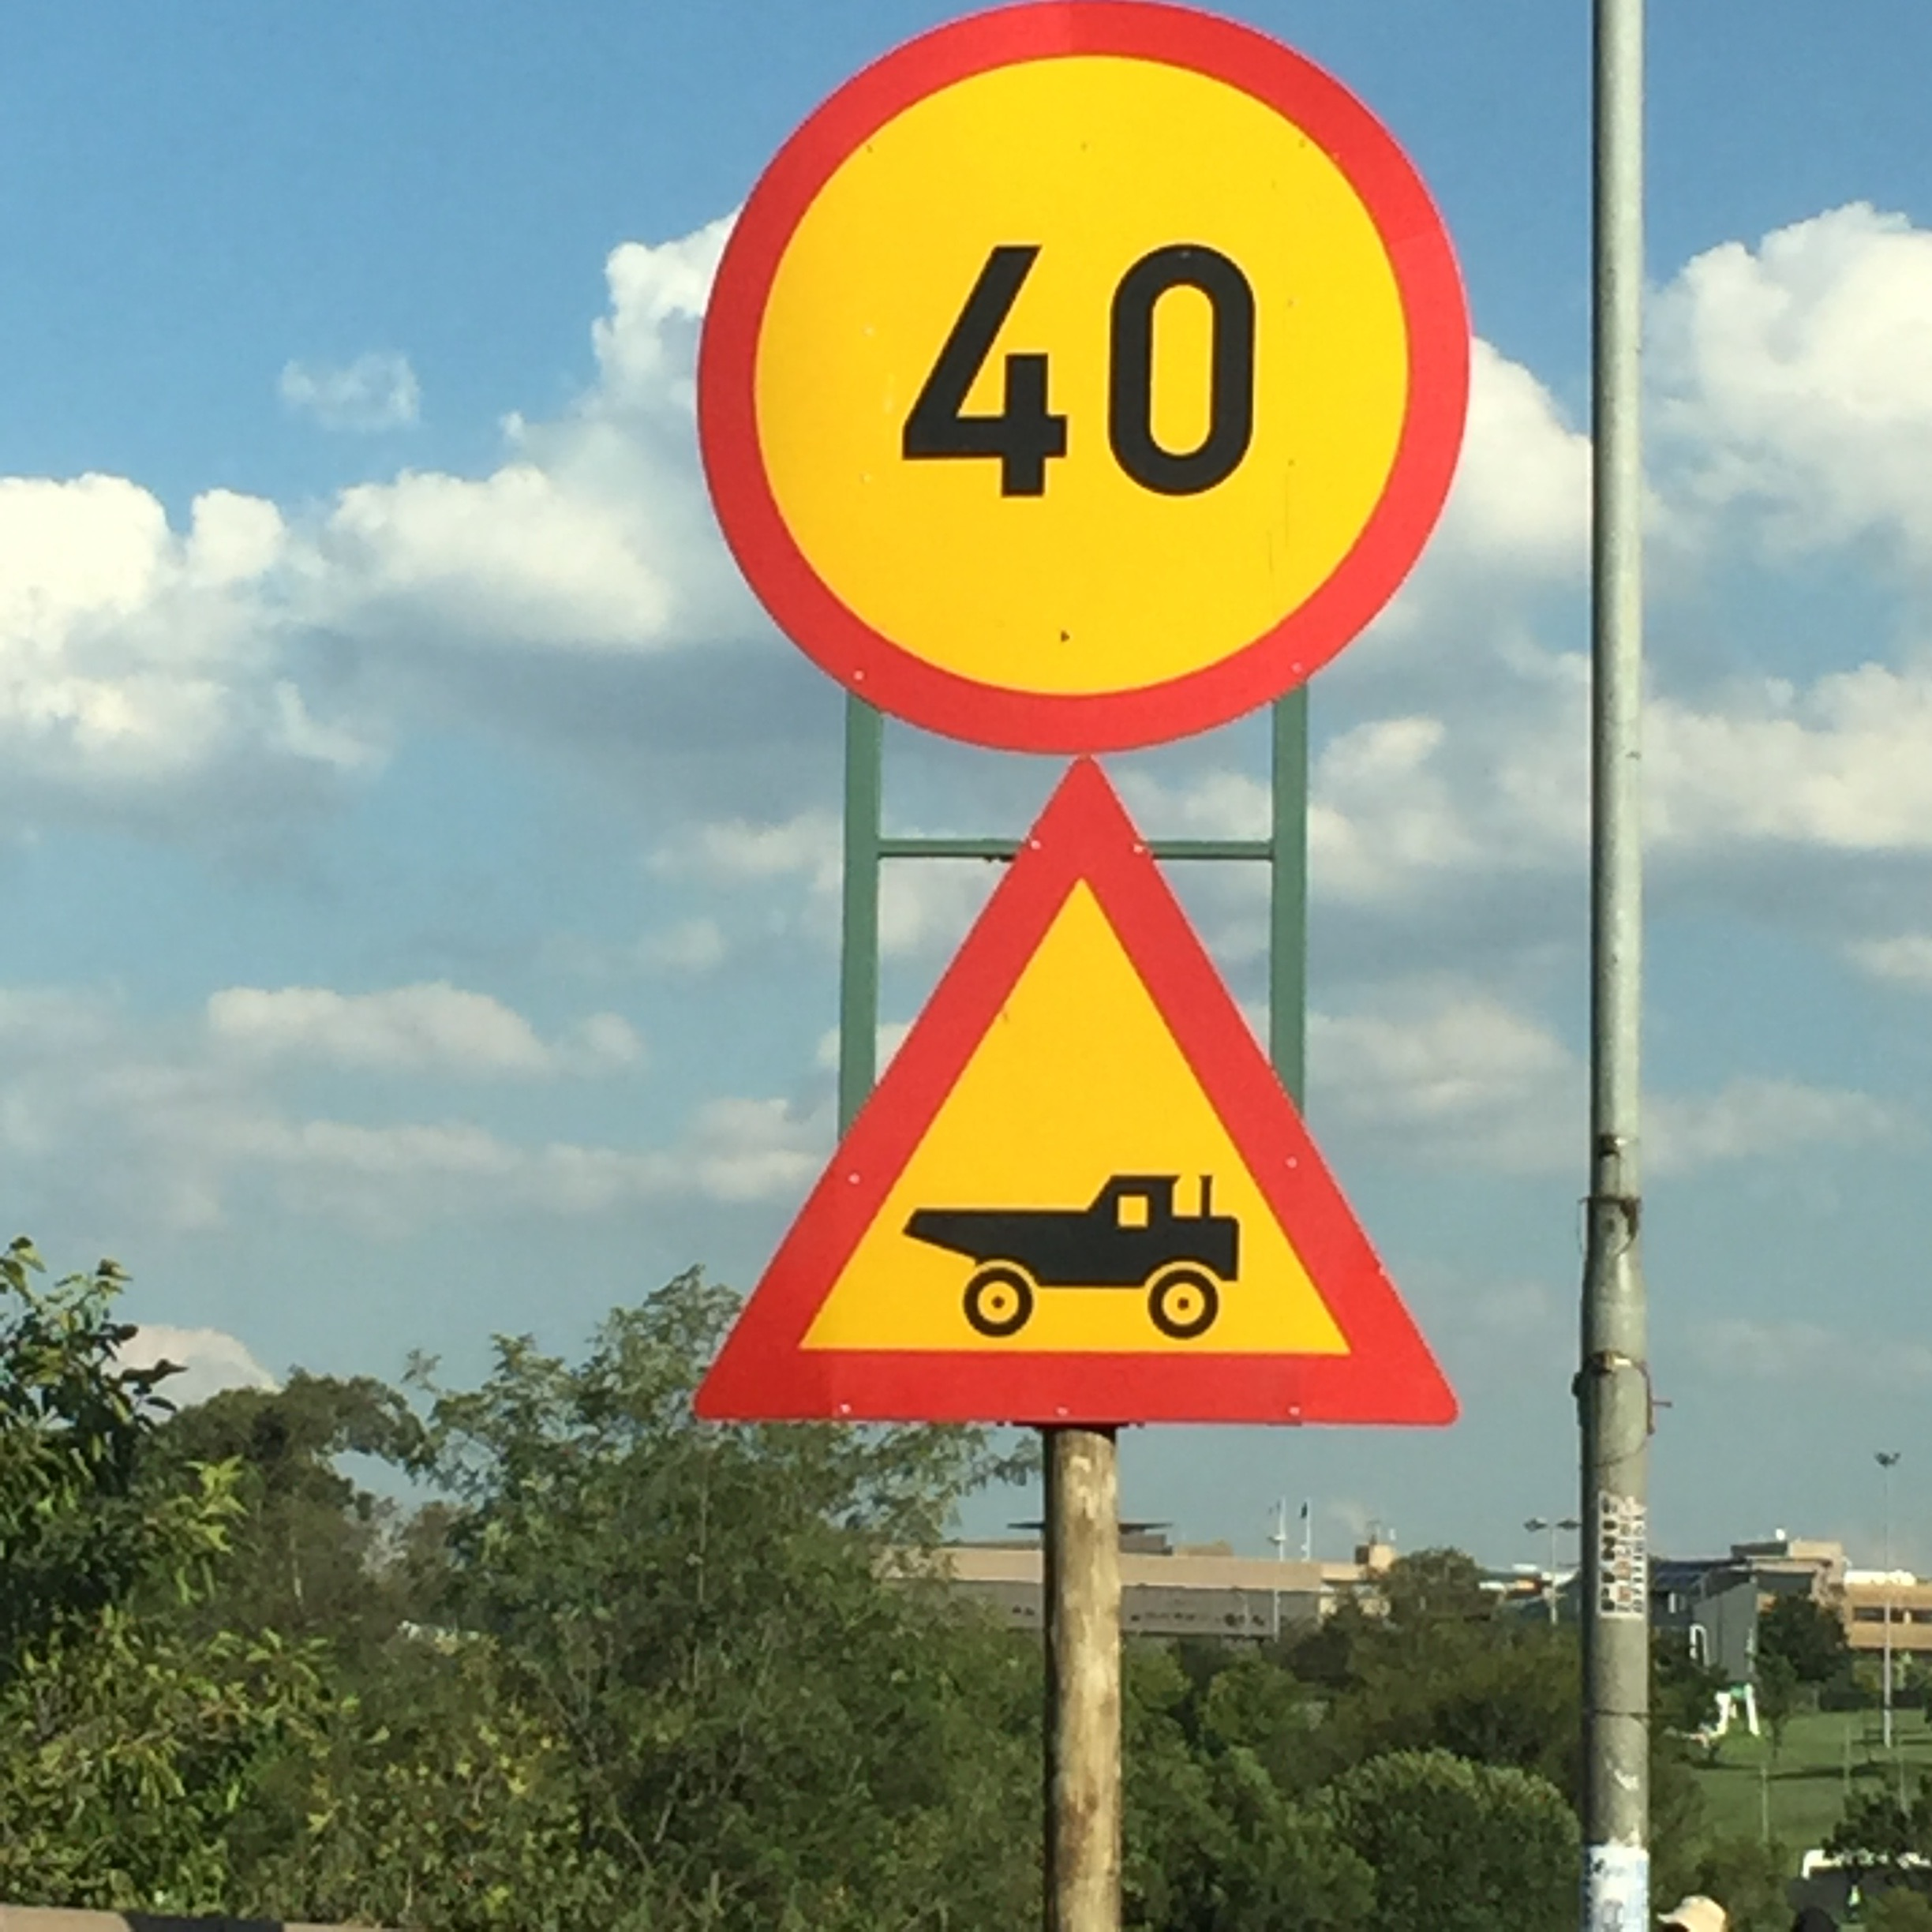 I loved the road signs in South Africa.